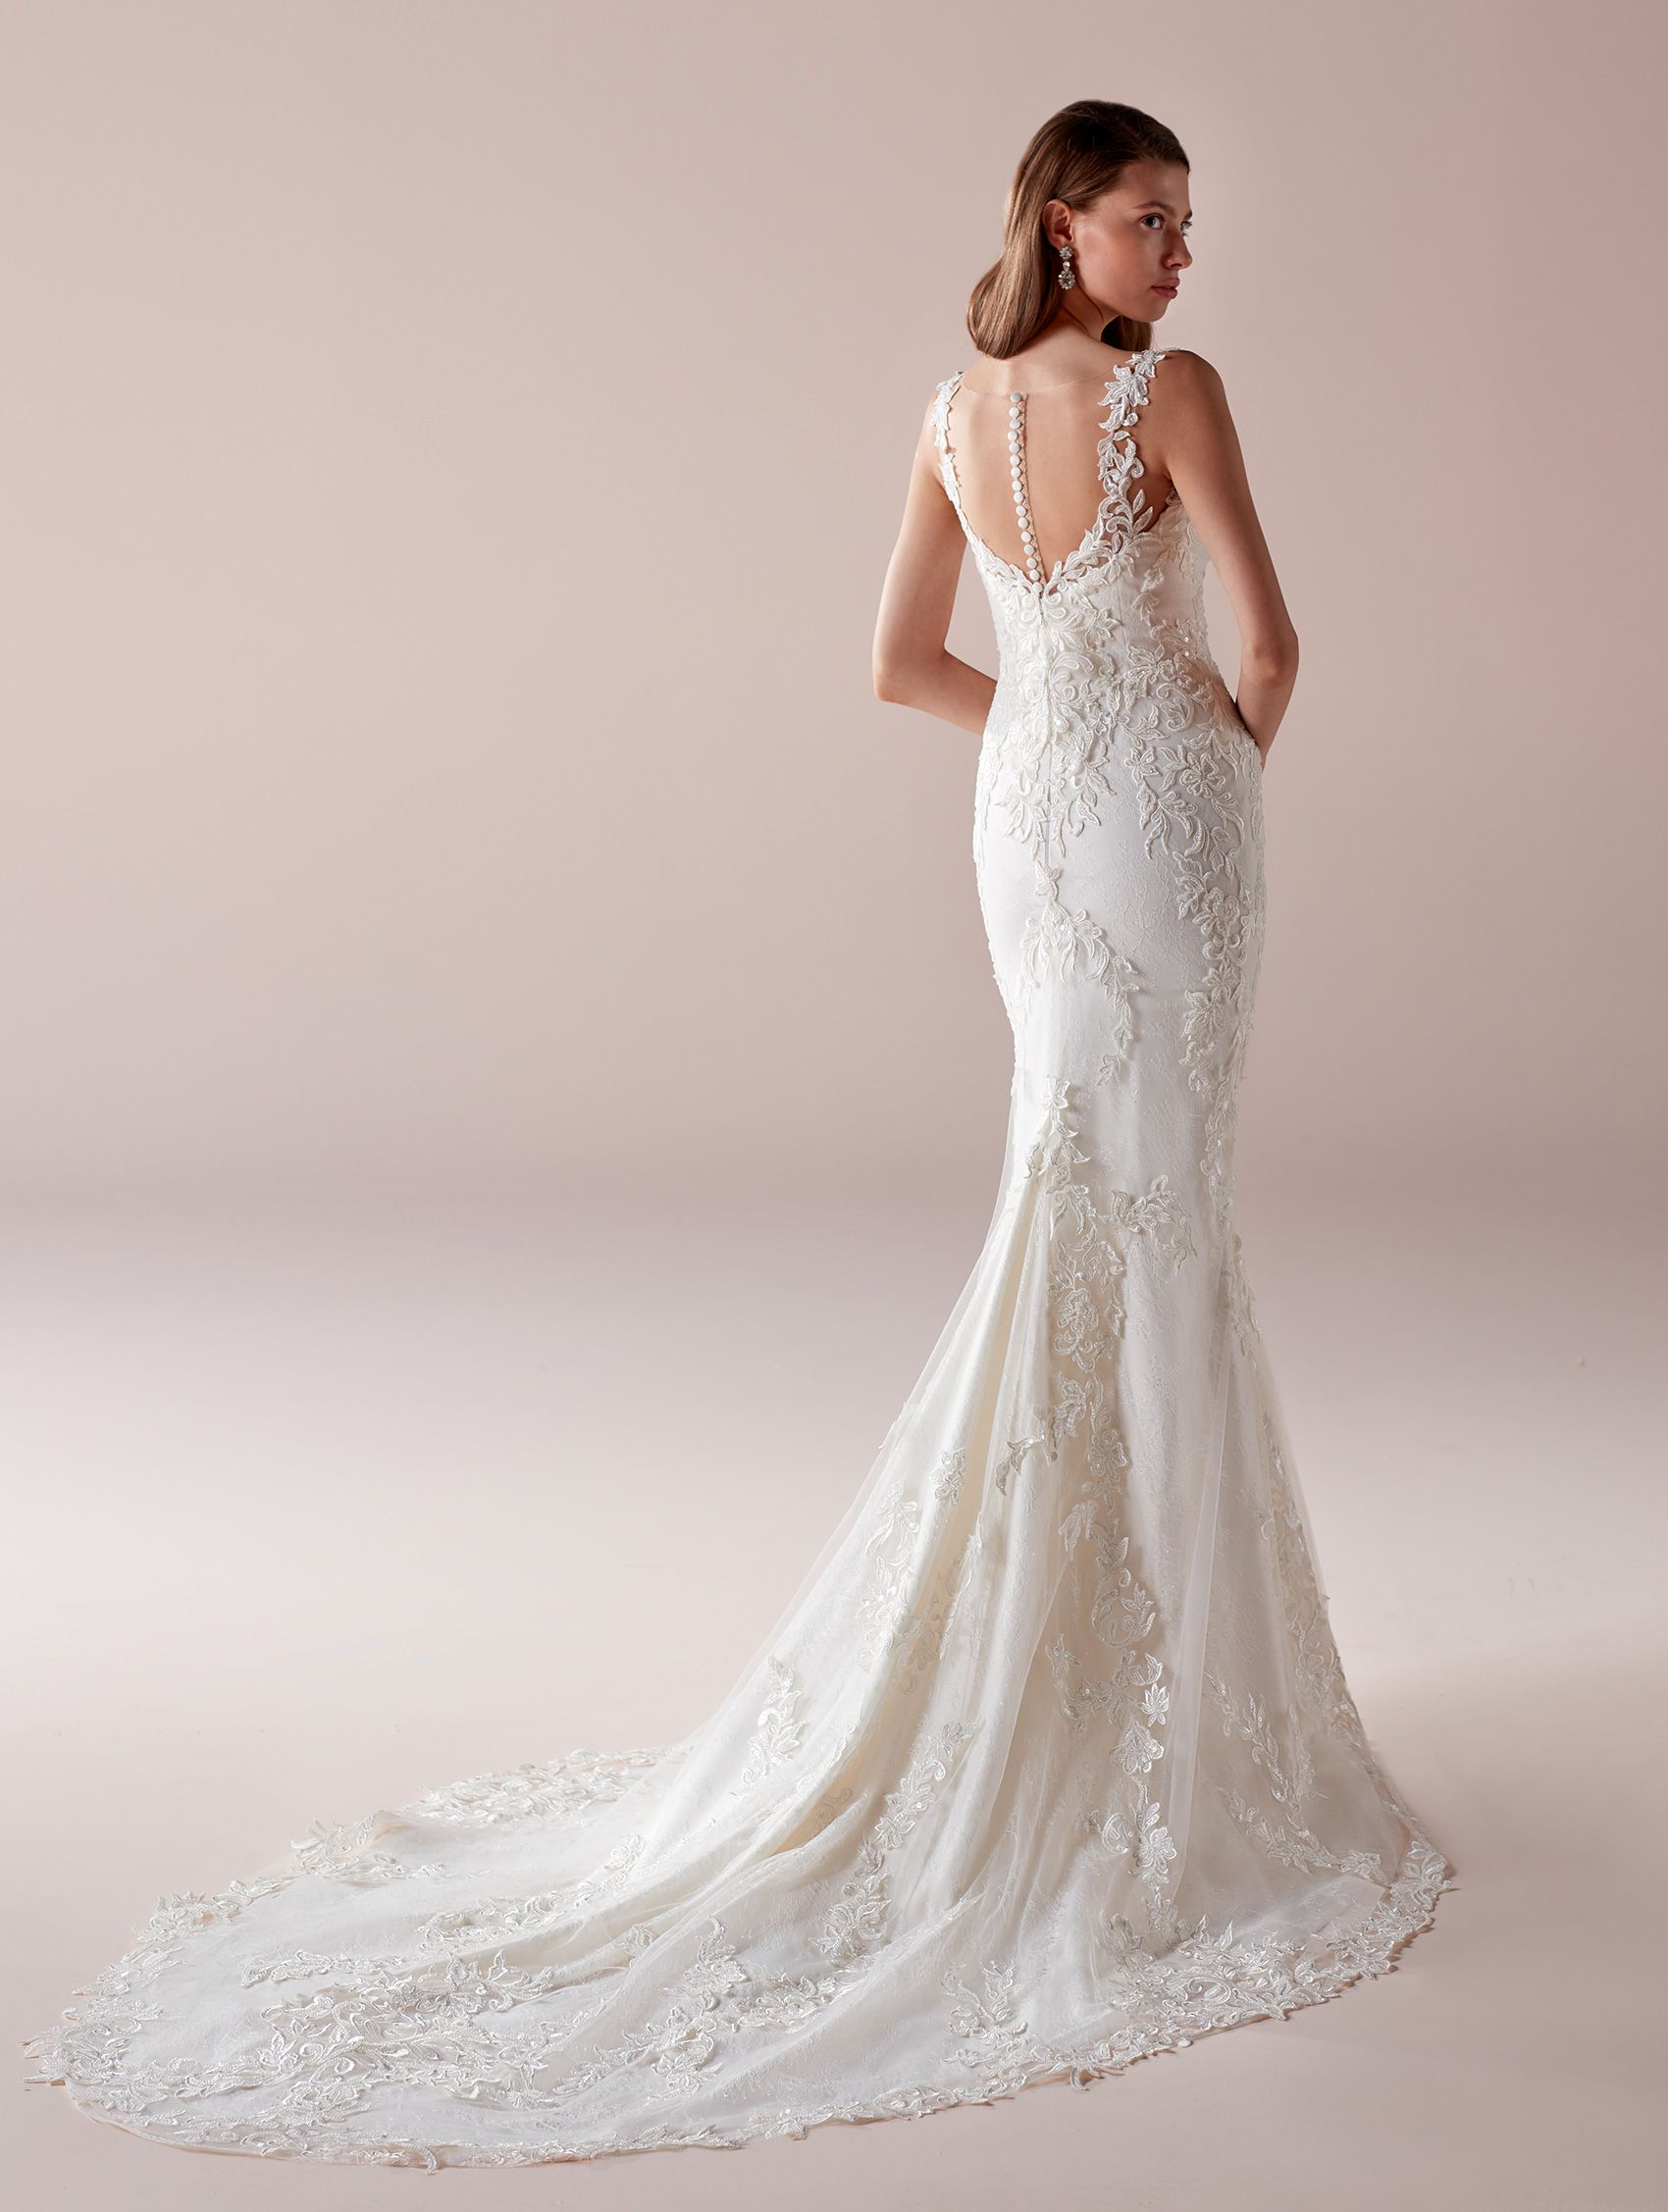 Roab romance collection sensual ivory mermaid dress in